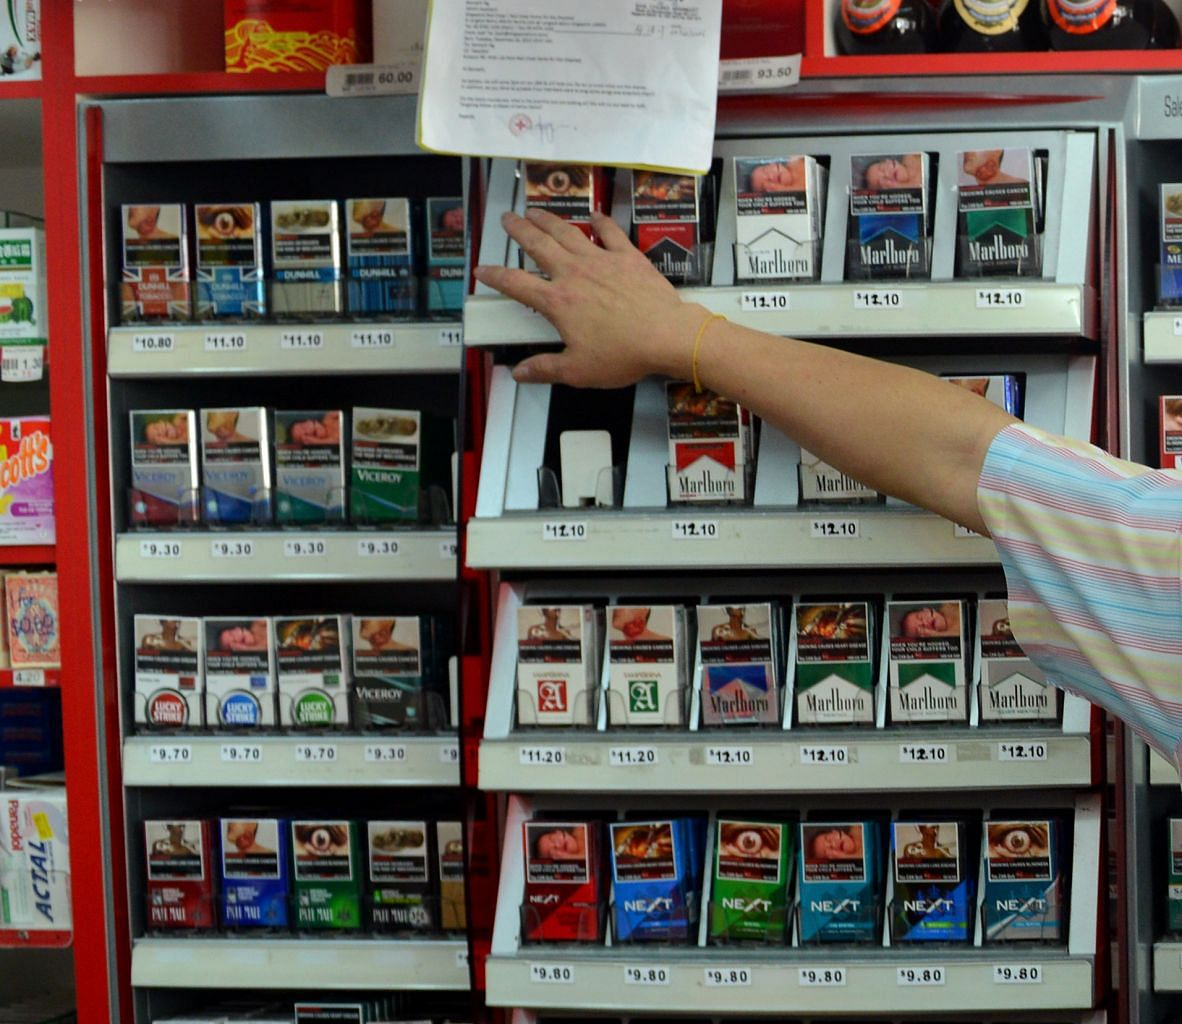 8da56f7fd8 MOH seeks public feedback on standardised tobacco packaging with bigger  graphic health warnings, Health News & Top Stories - The Straits Times